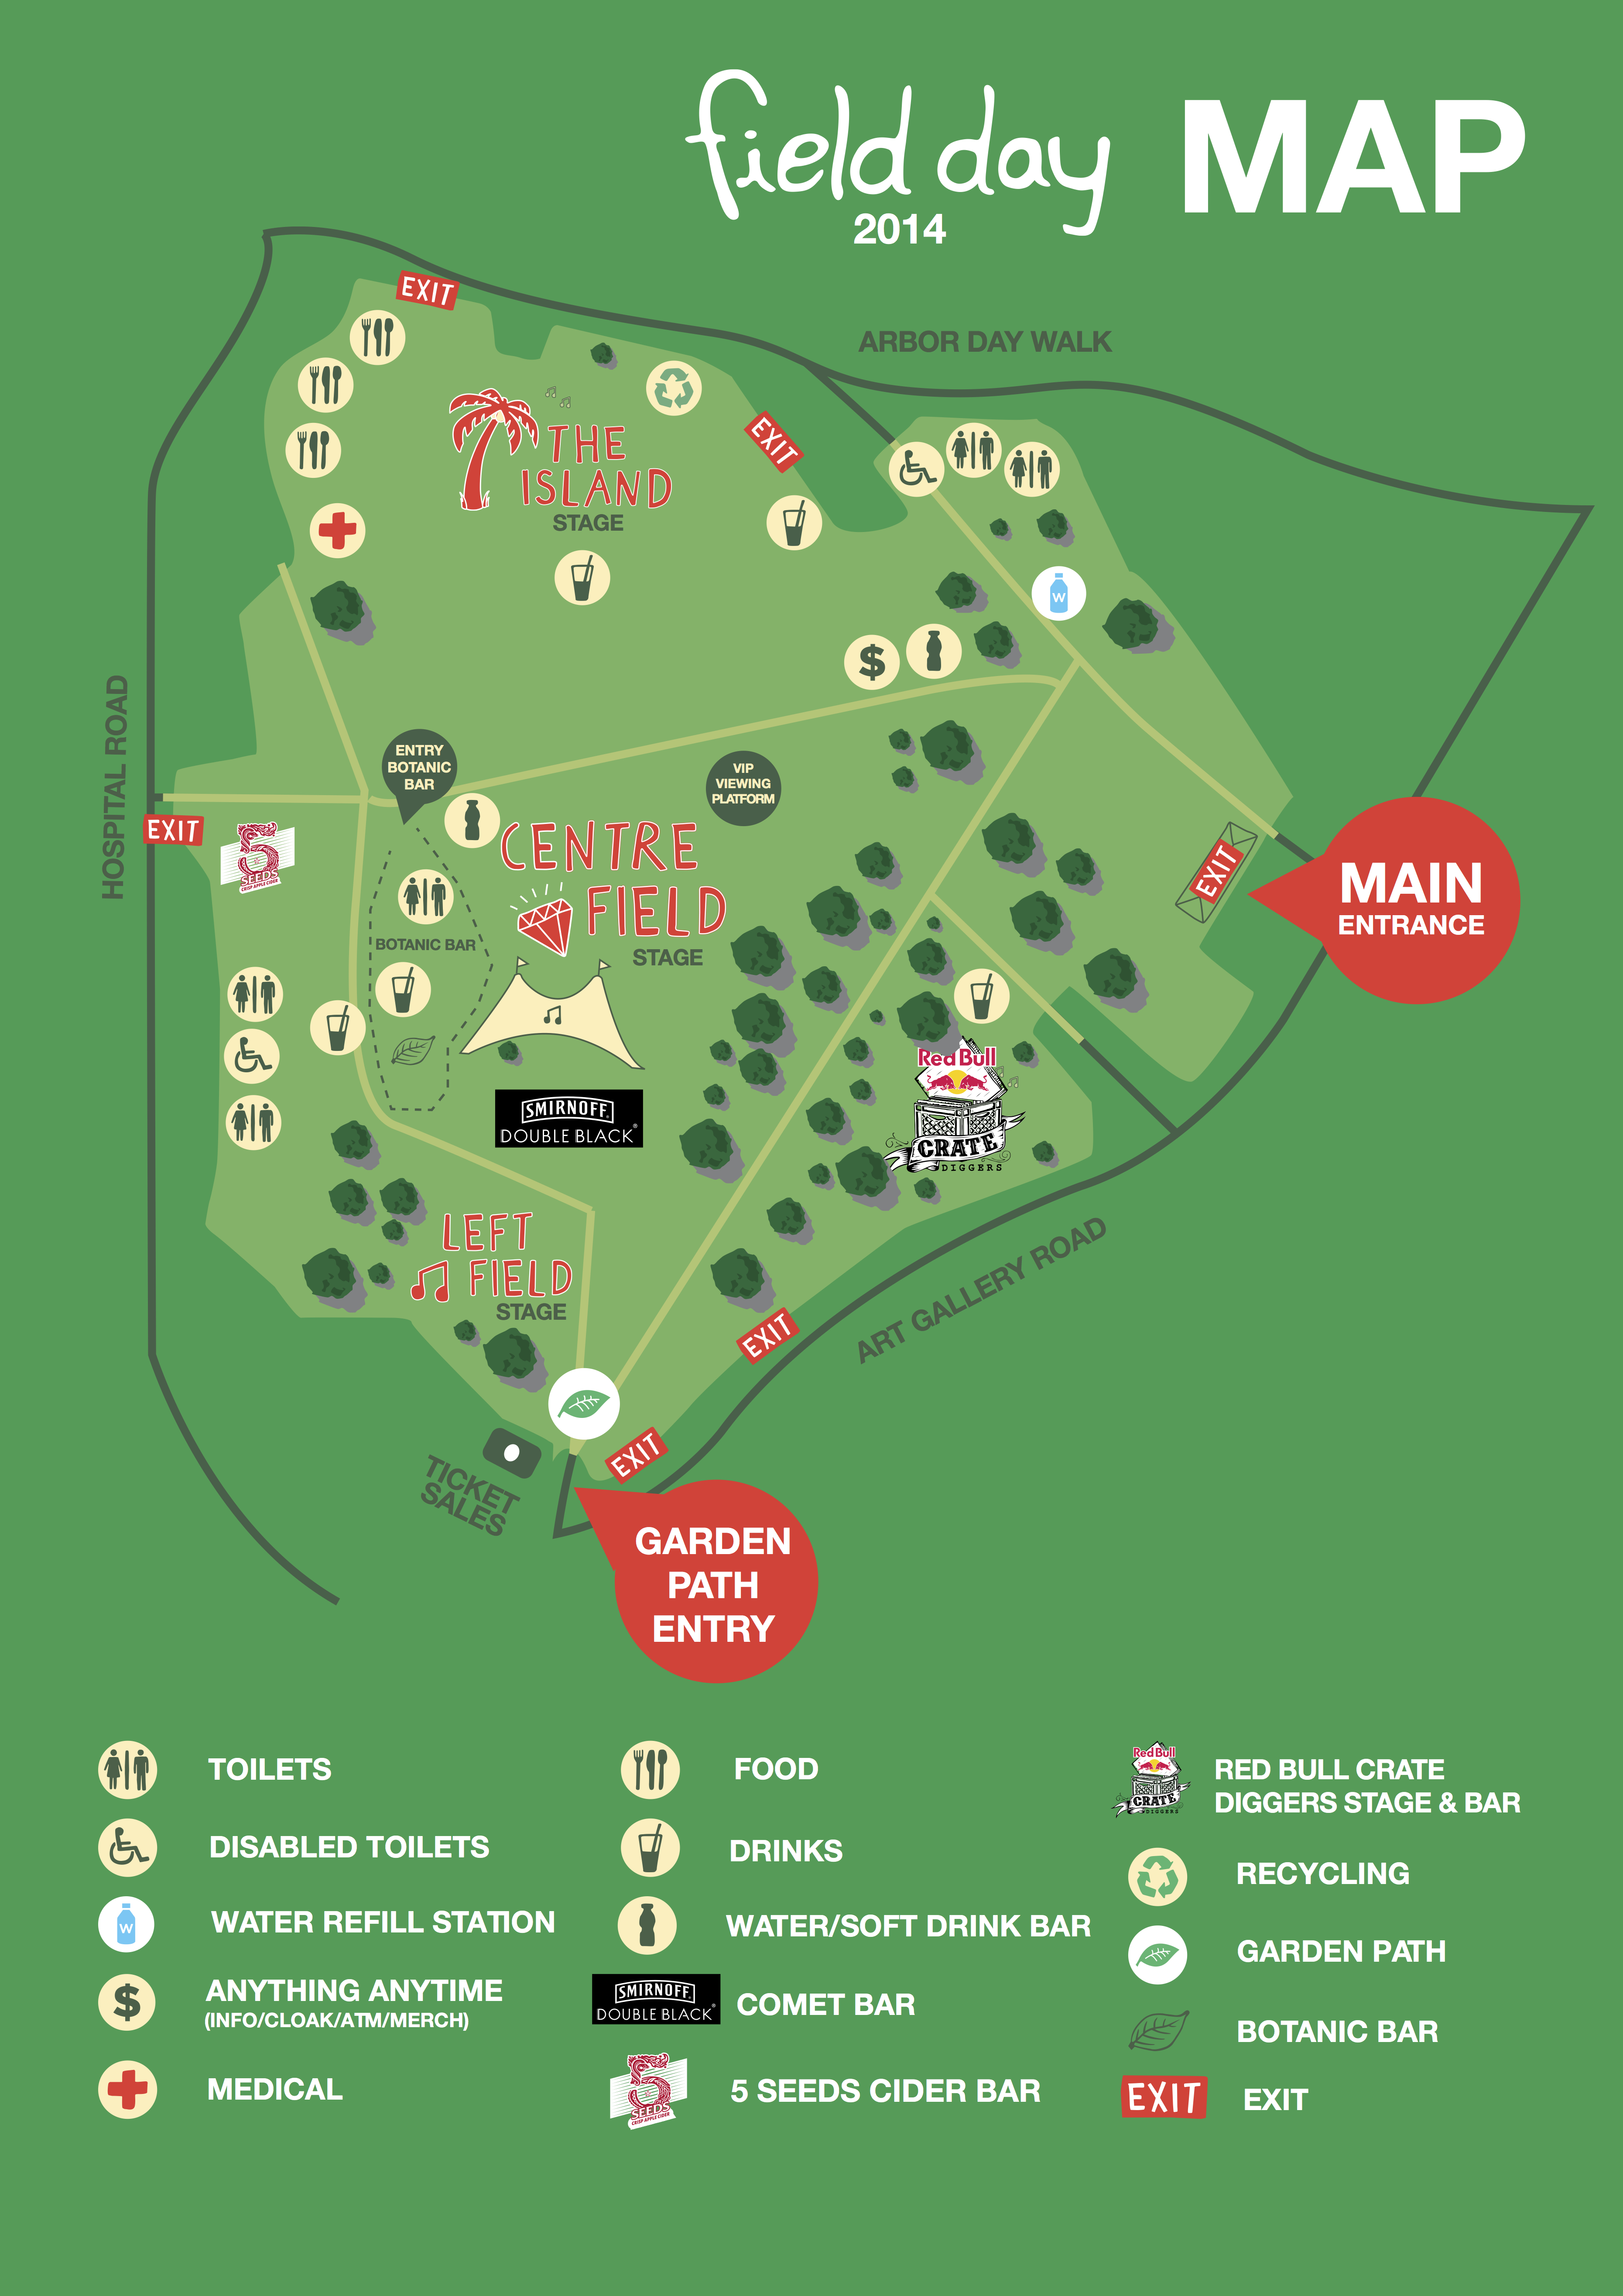 Field Day Map Field Day 2014 Unveil Set Times And App   Music Feeds Field Day Map